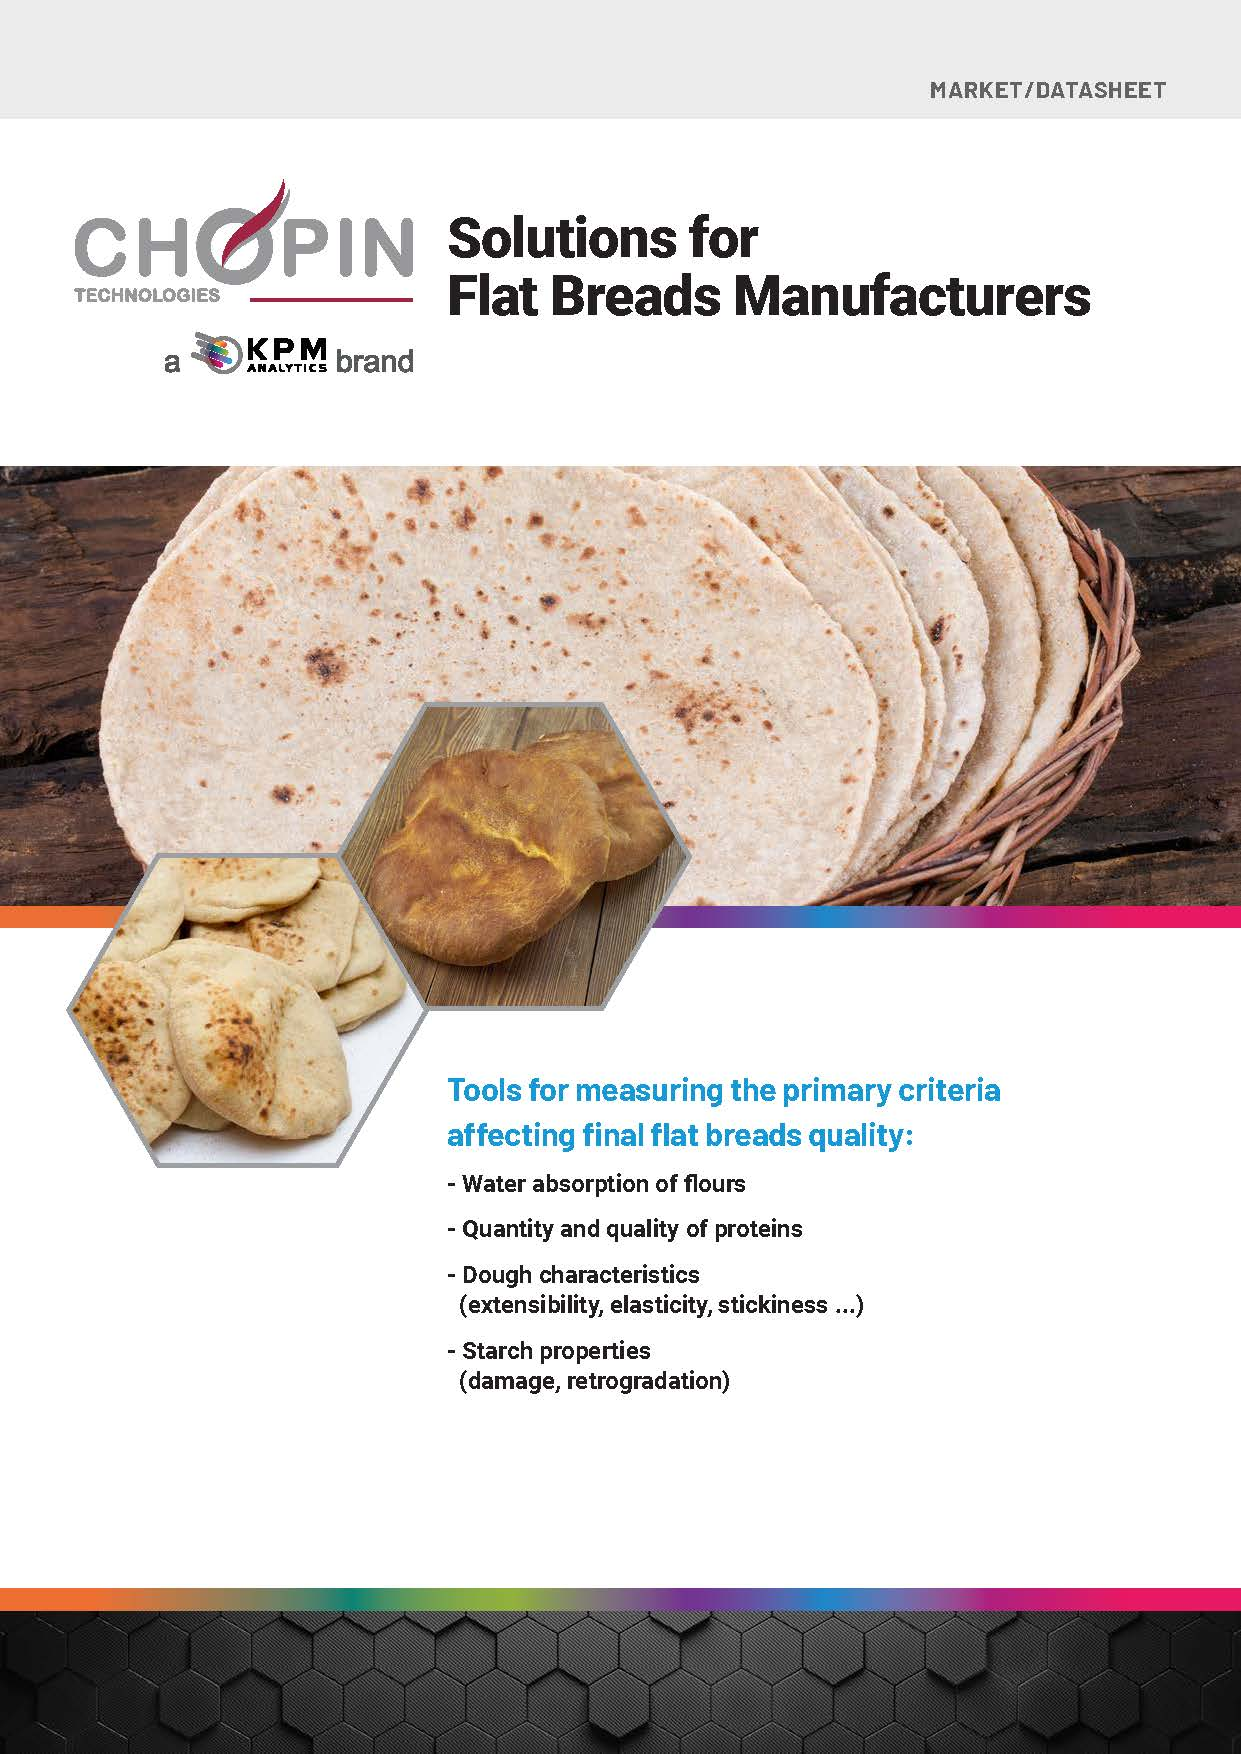 Solutions for Flat Breads Manufacturers